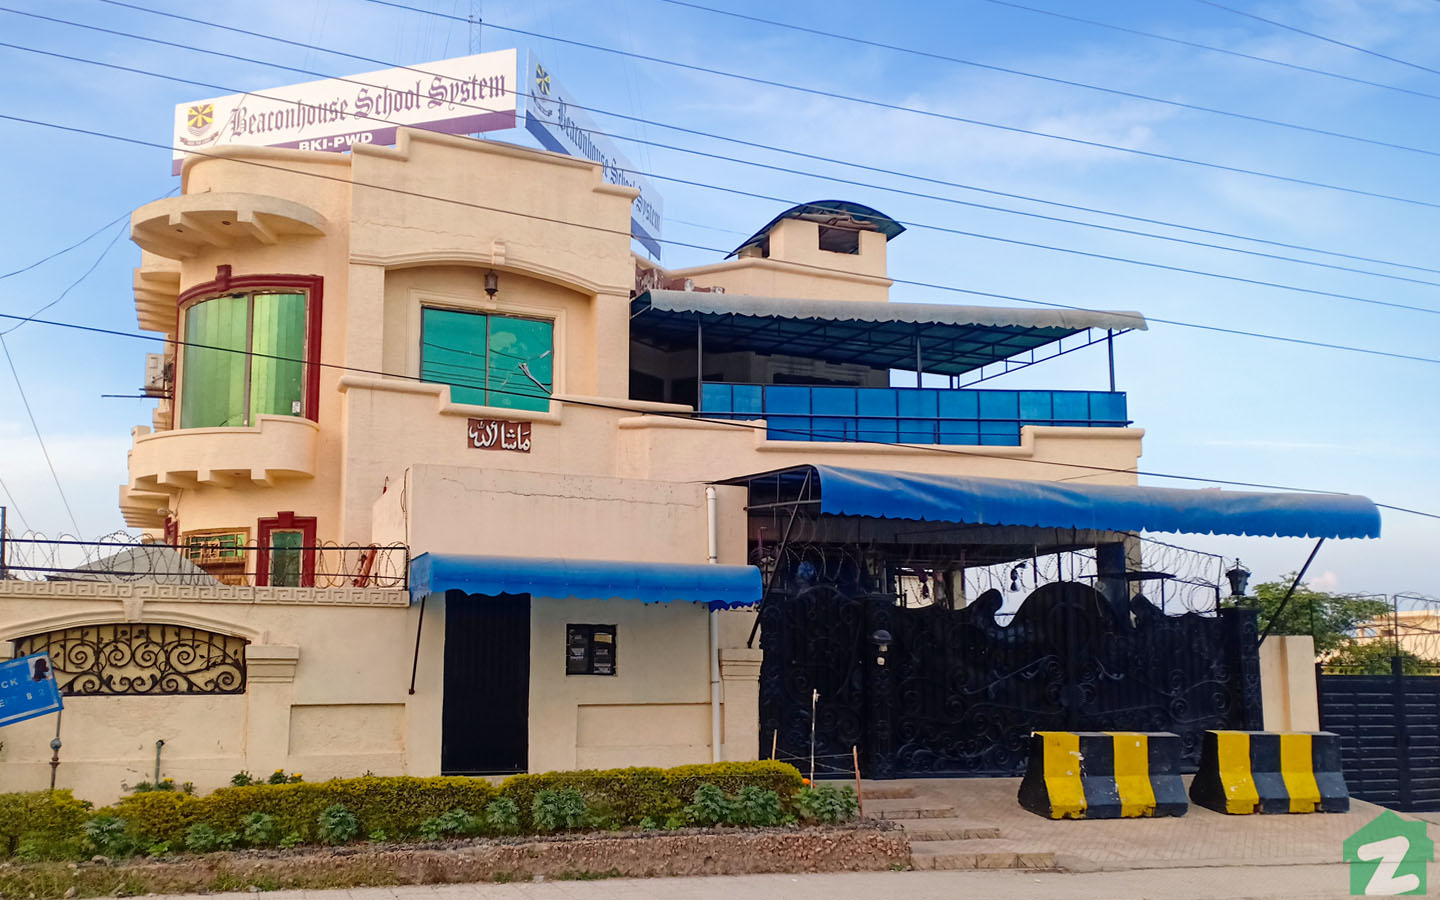 Beaconhouse School System in PWD is just 6 minutes away